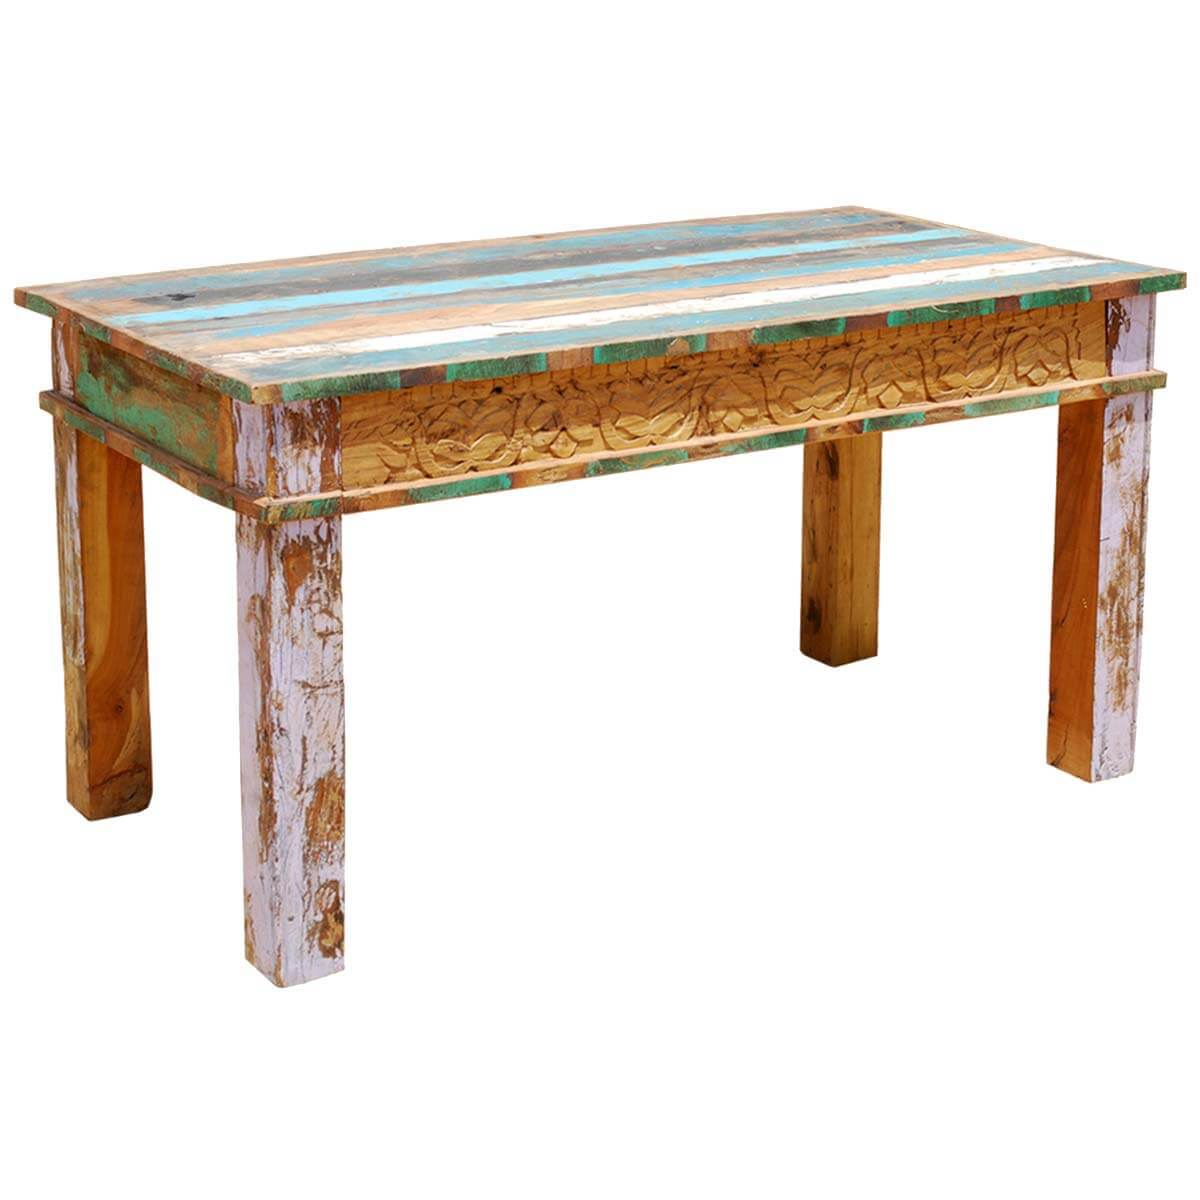 Rustic Wooden Dining Room Table ~ Reclaimed wood rustic dining room table furniture